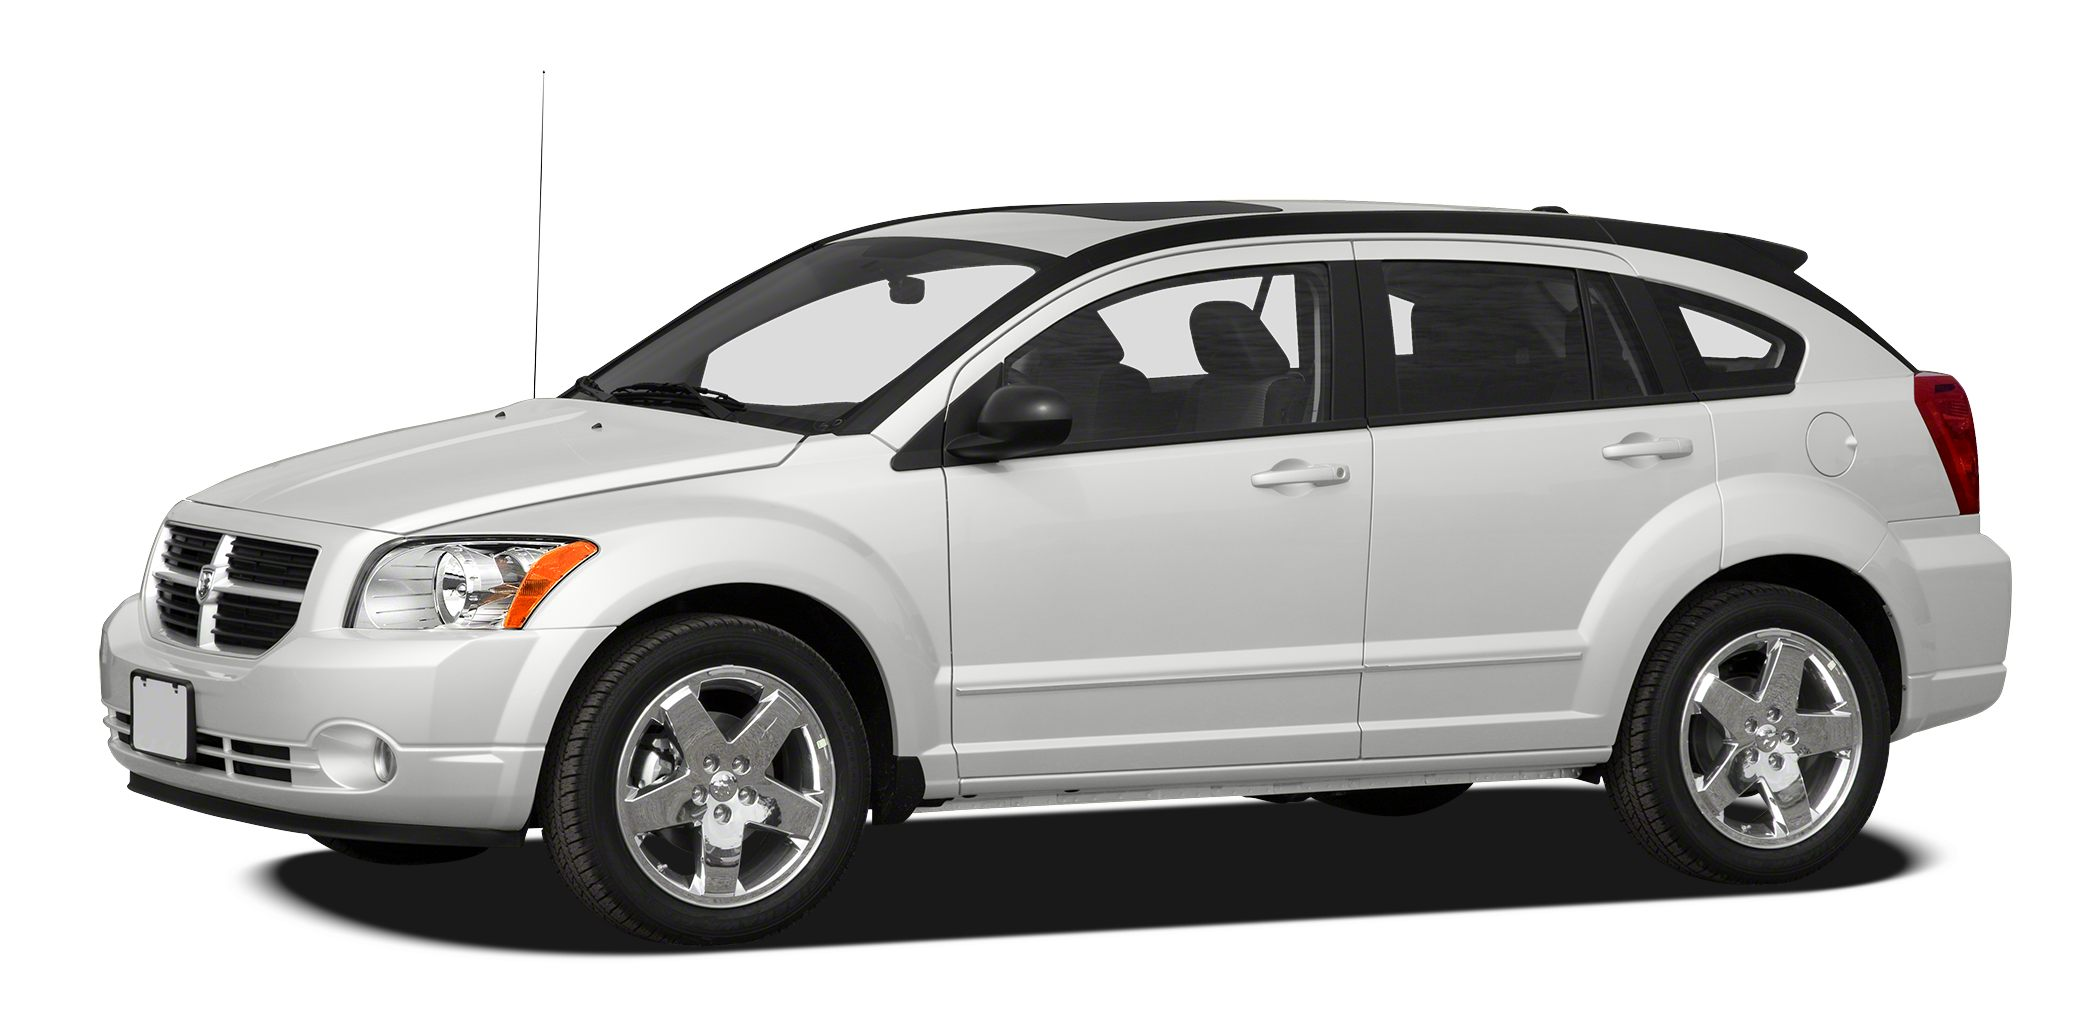 2011 Dodge Caliber Mainstreet For Internet Pricing and InformationPlease call Teresa Brown  866-3